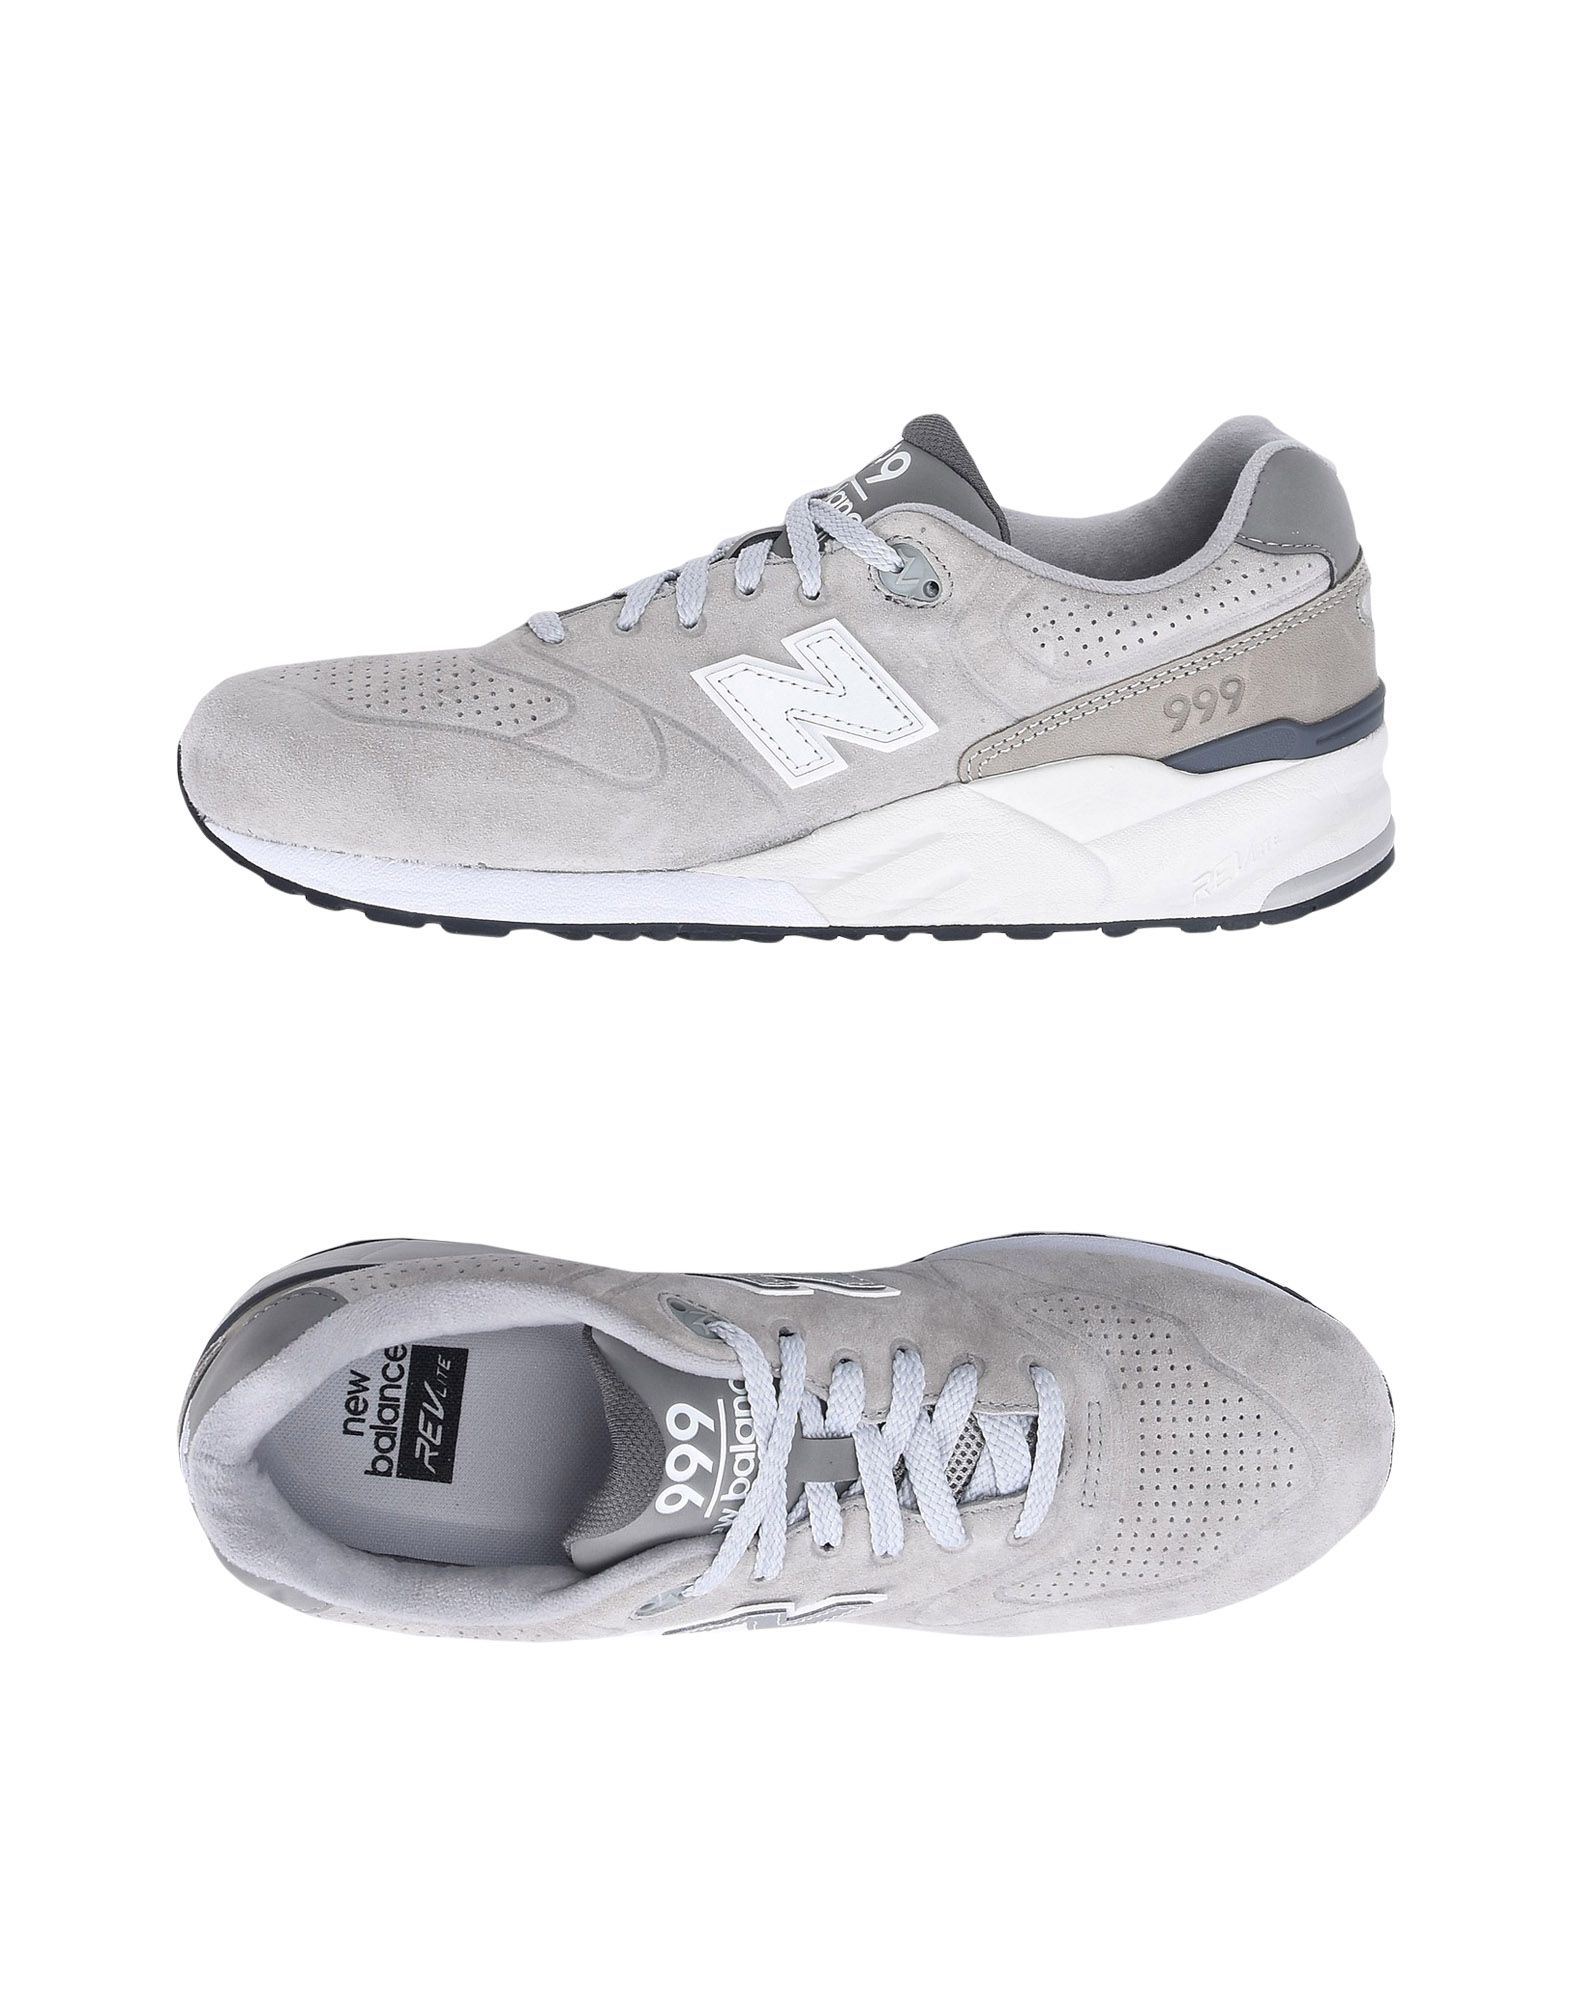 Sneakers New Balance 999 Reengineered - Homme - Sneakers New Balance  Gris Dédouanement saisonnier